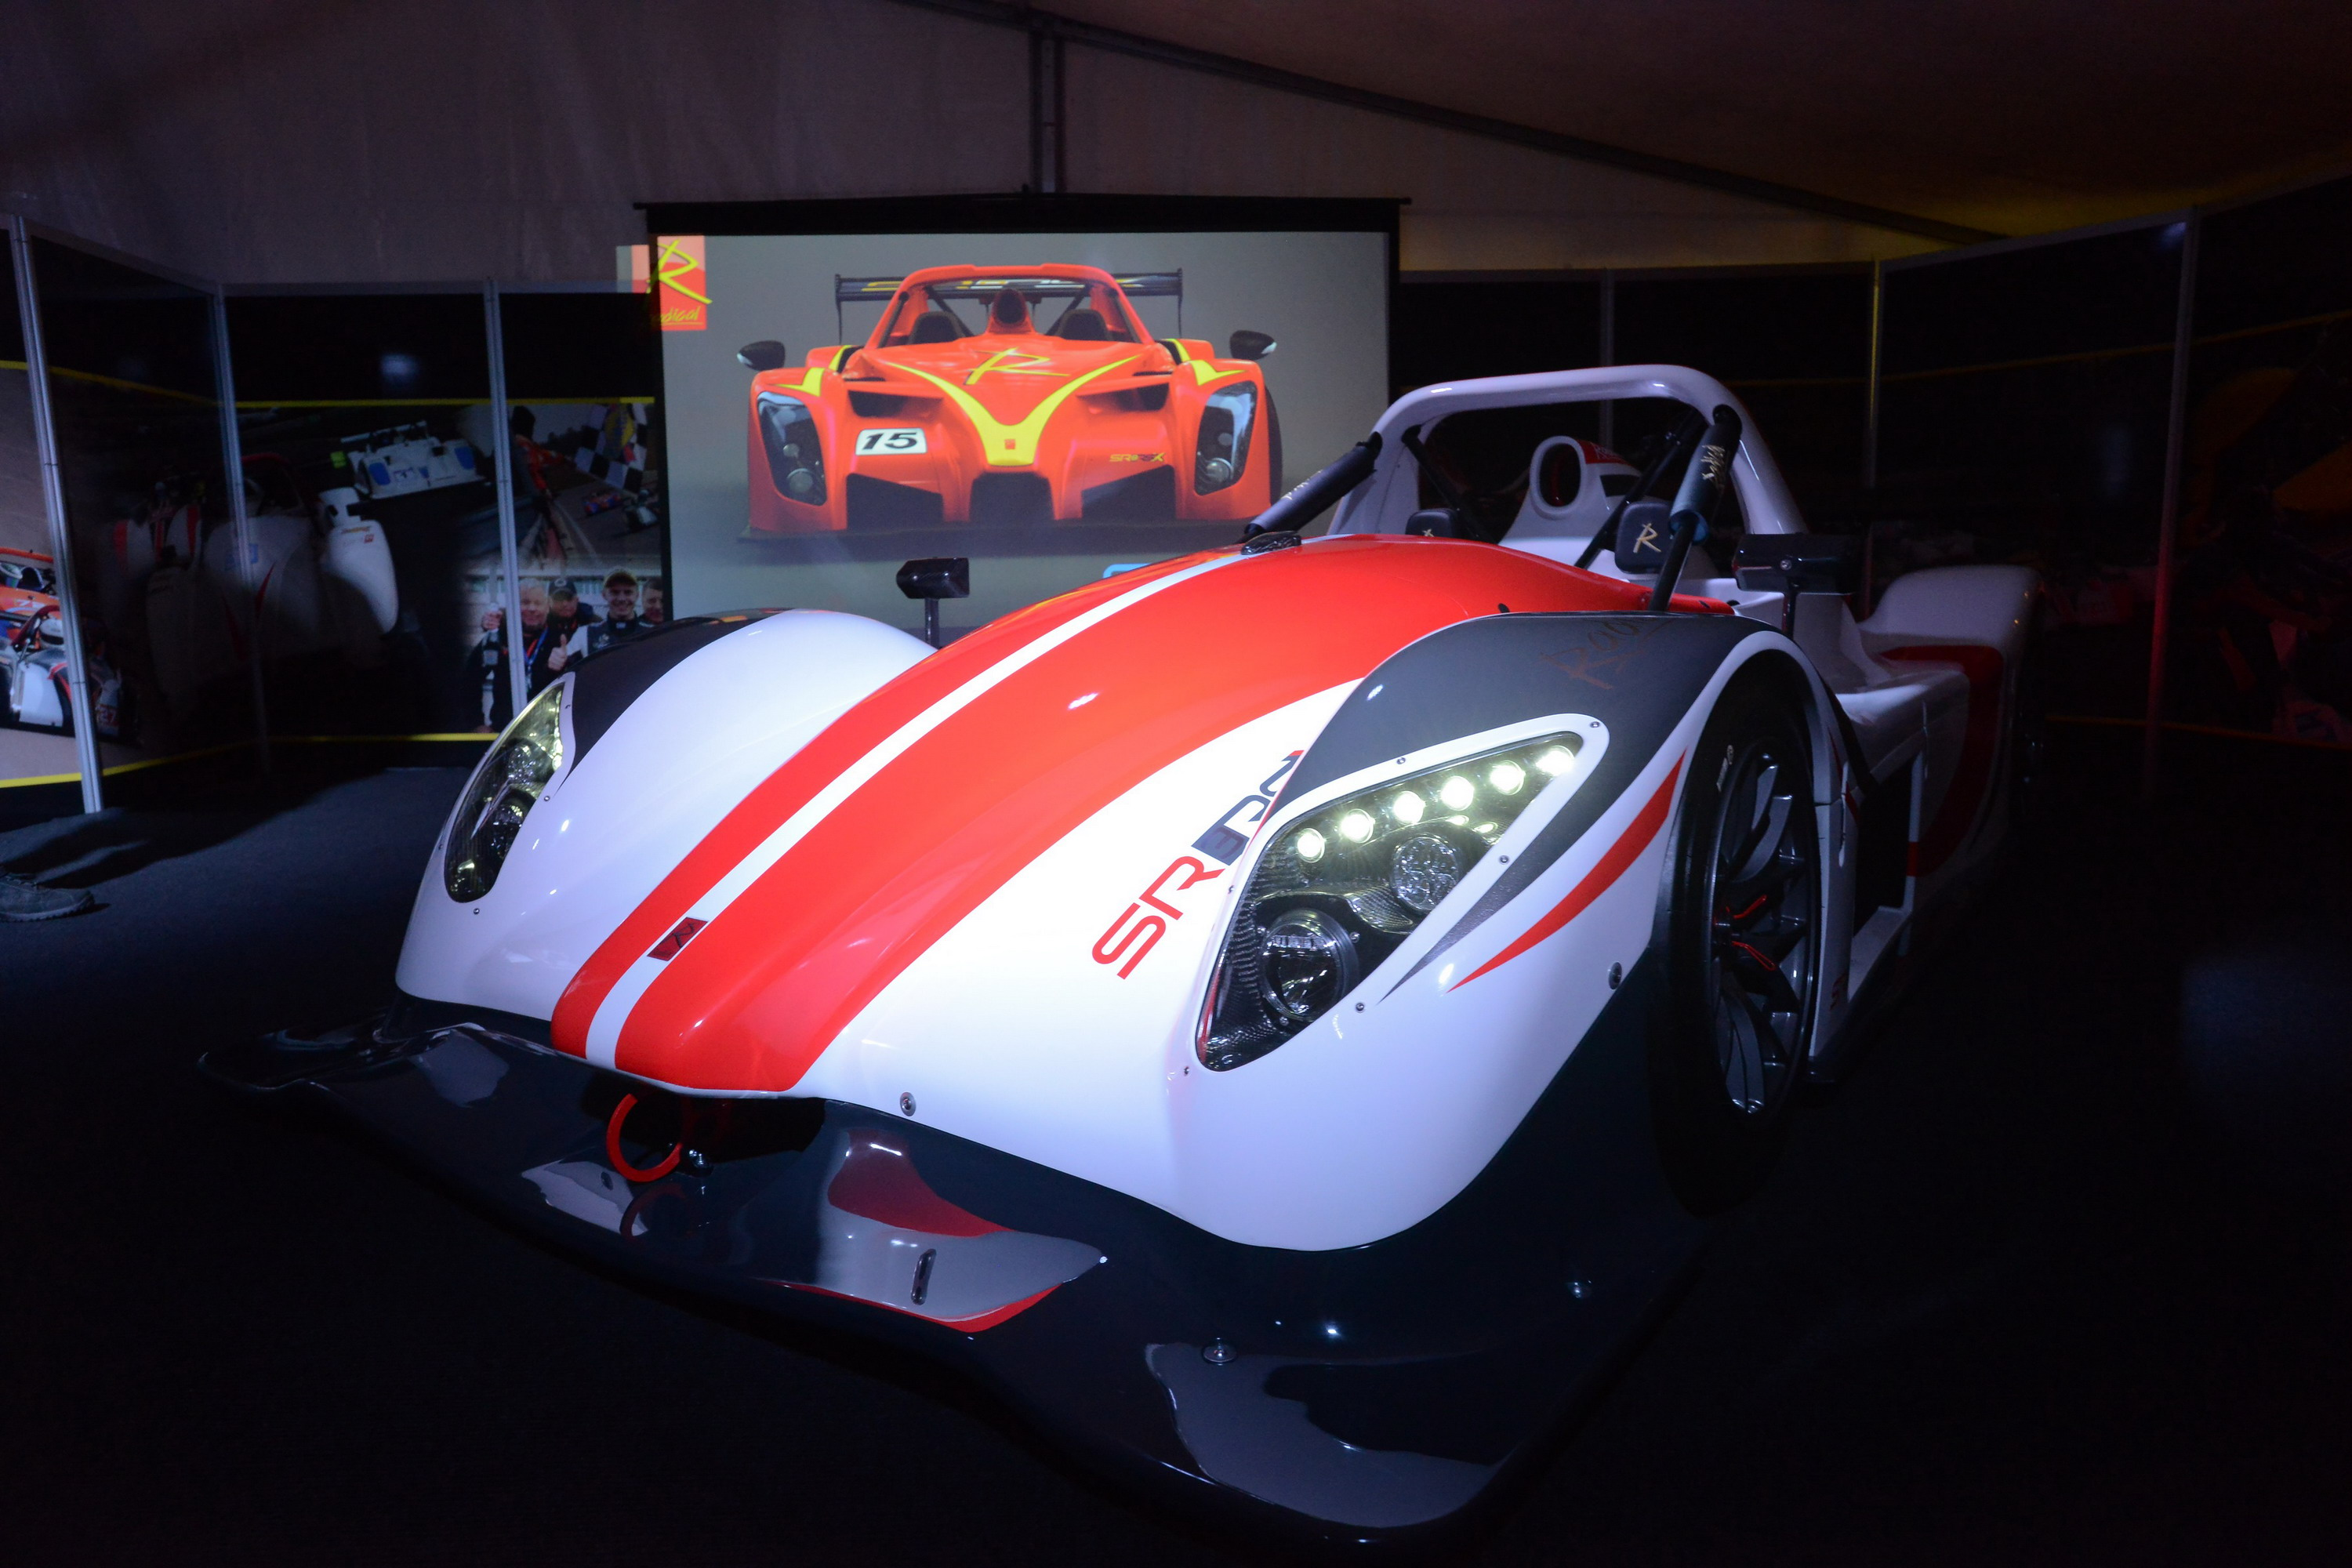 2015 Radical SR3 RSX Review - Top Speed